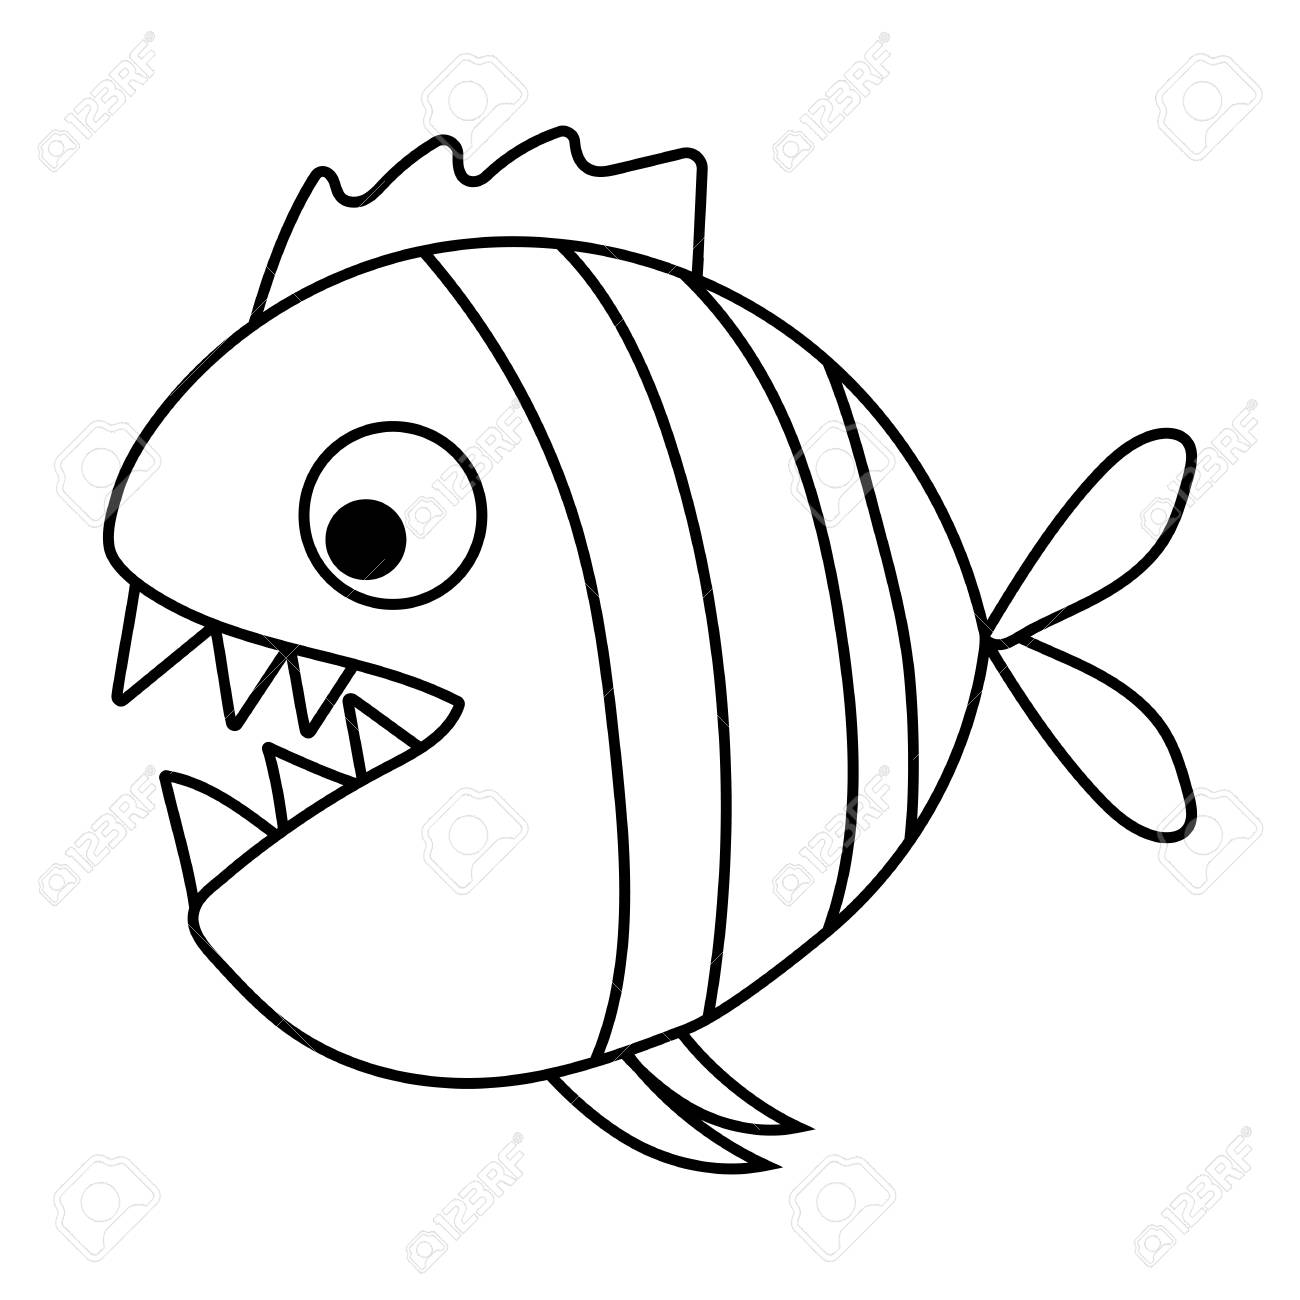 cute cartoon piranha with sharp teeth. Vector illustration.